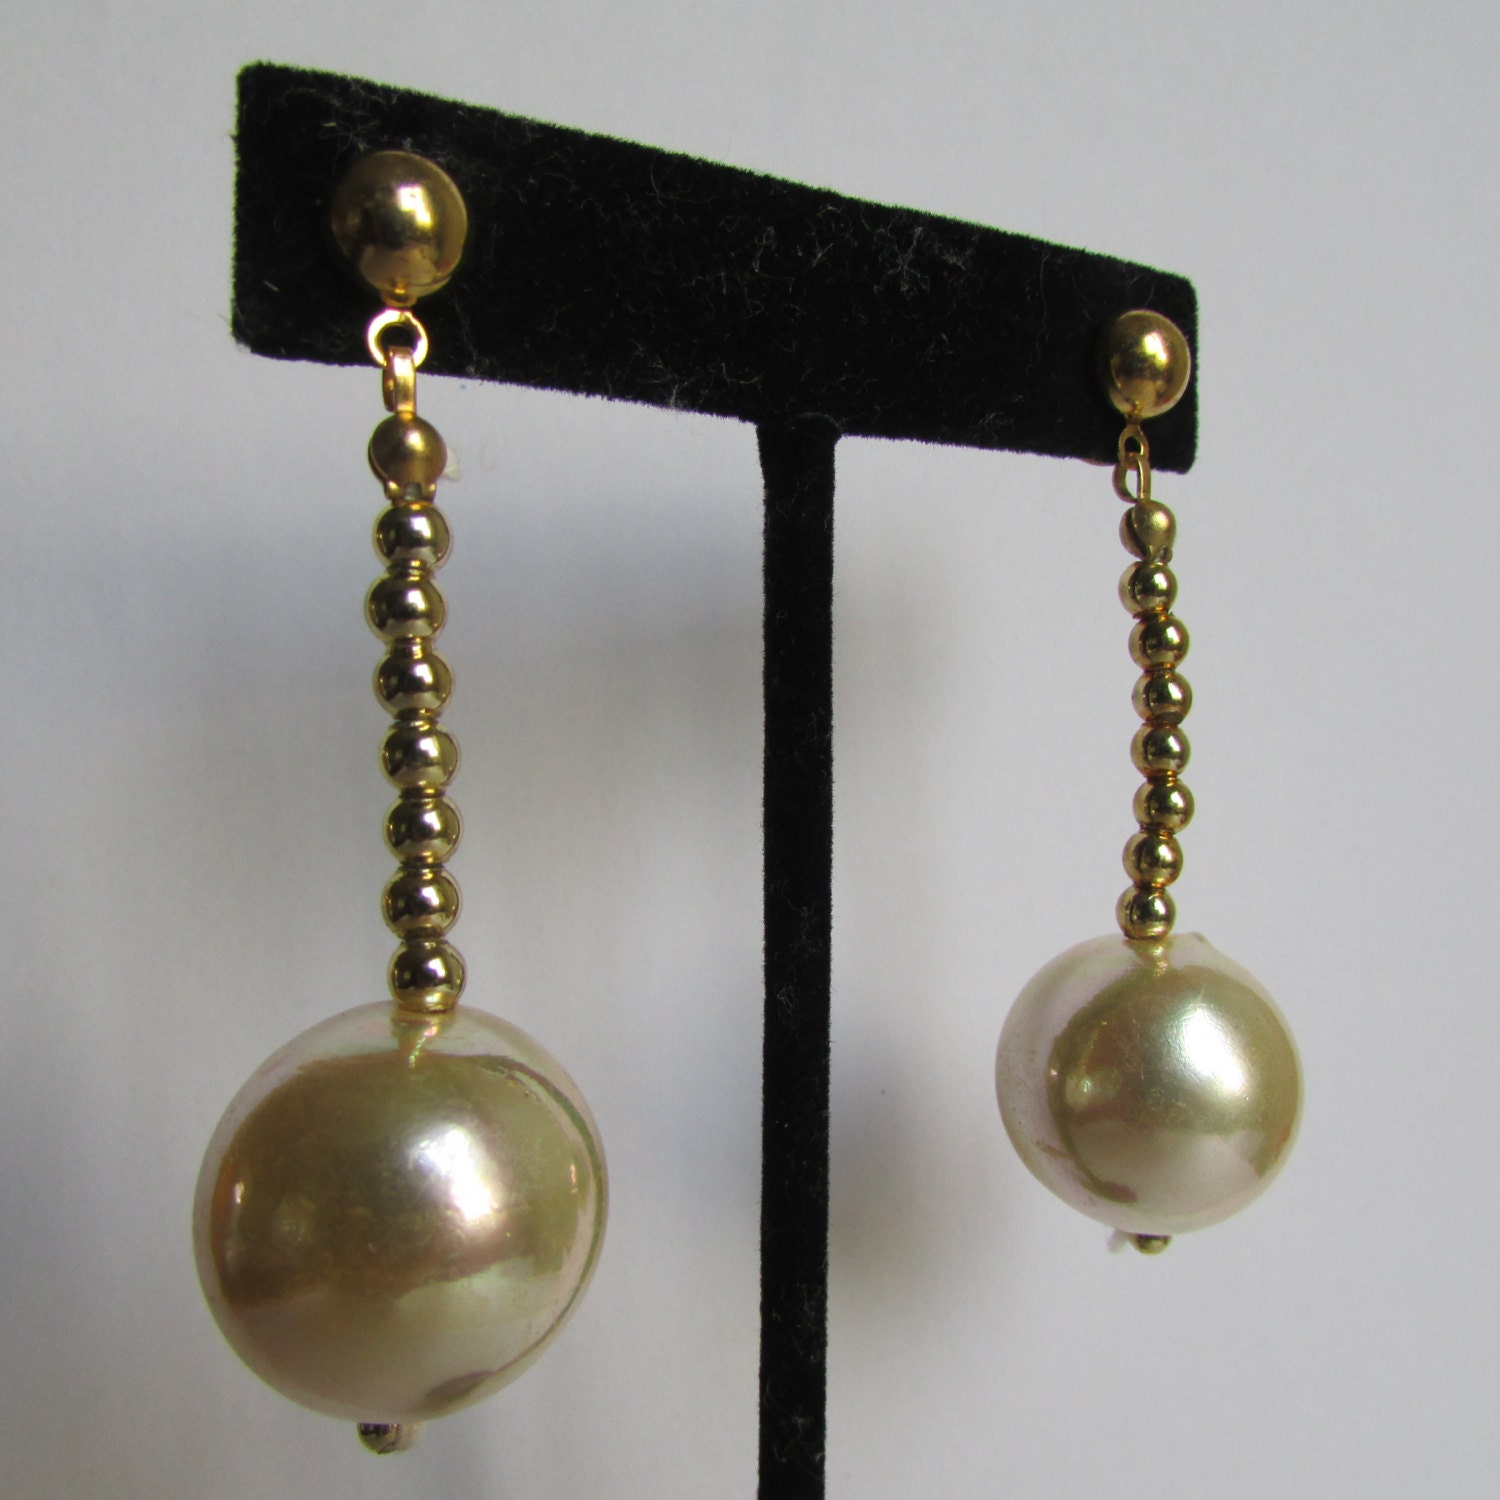 vintage earrings faux pearl drop earrings 90s by cruzvintage